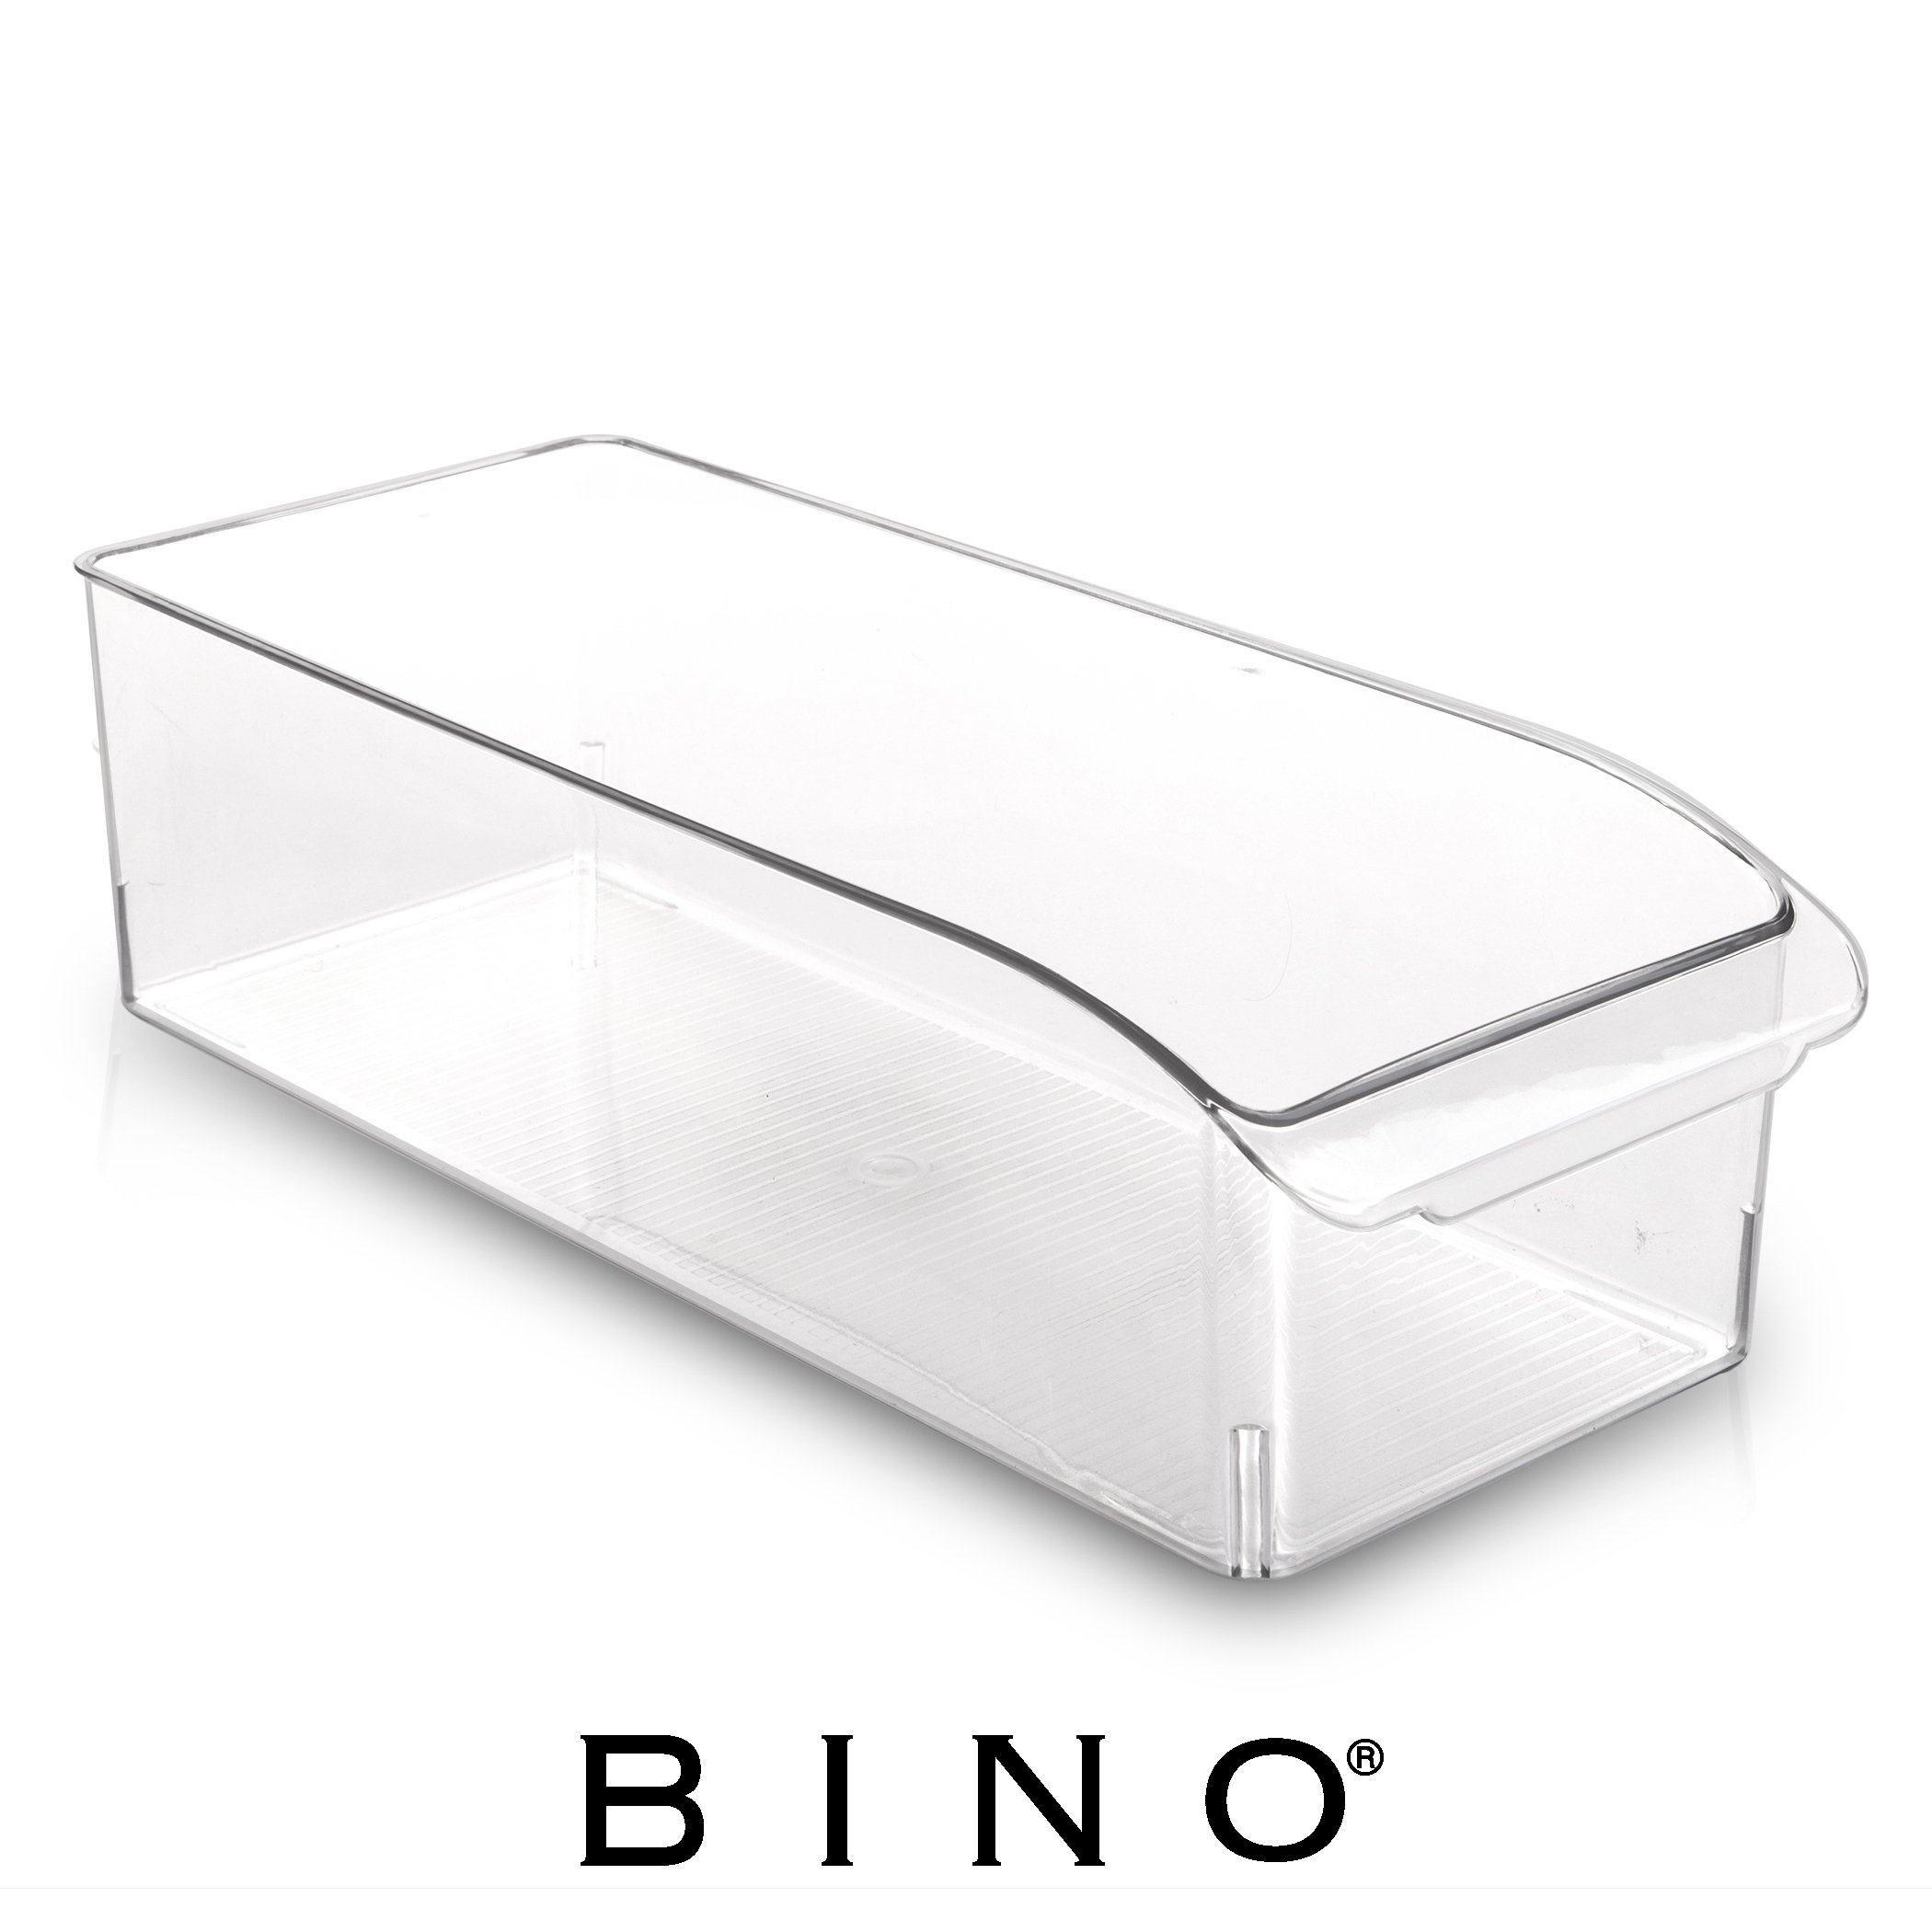 BINO Refrigerator, Freezer and Pantry Cabinet Storage Drawer Organizer Bin, Clear and Transparent Plastic Nesting Container for Home and Kitchen with Built-In Pull Out Handle, Large